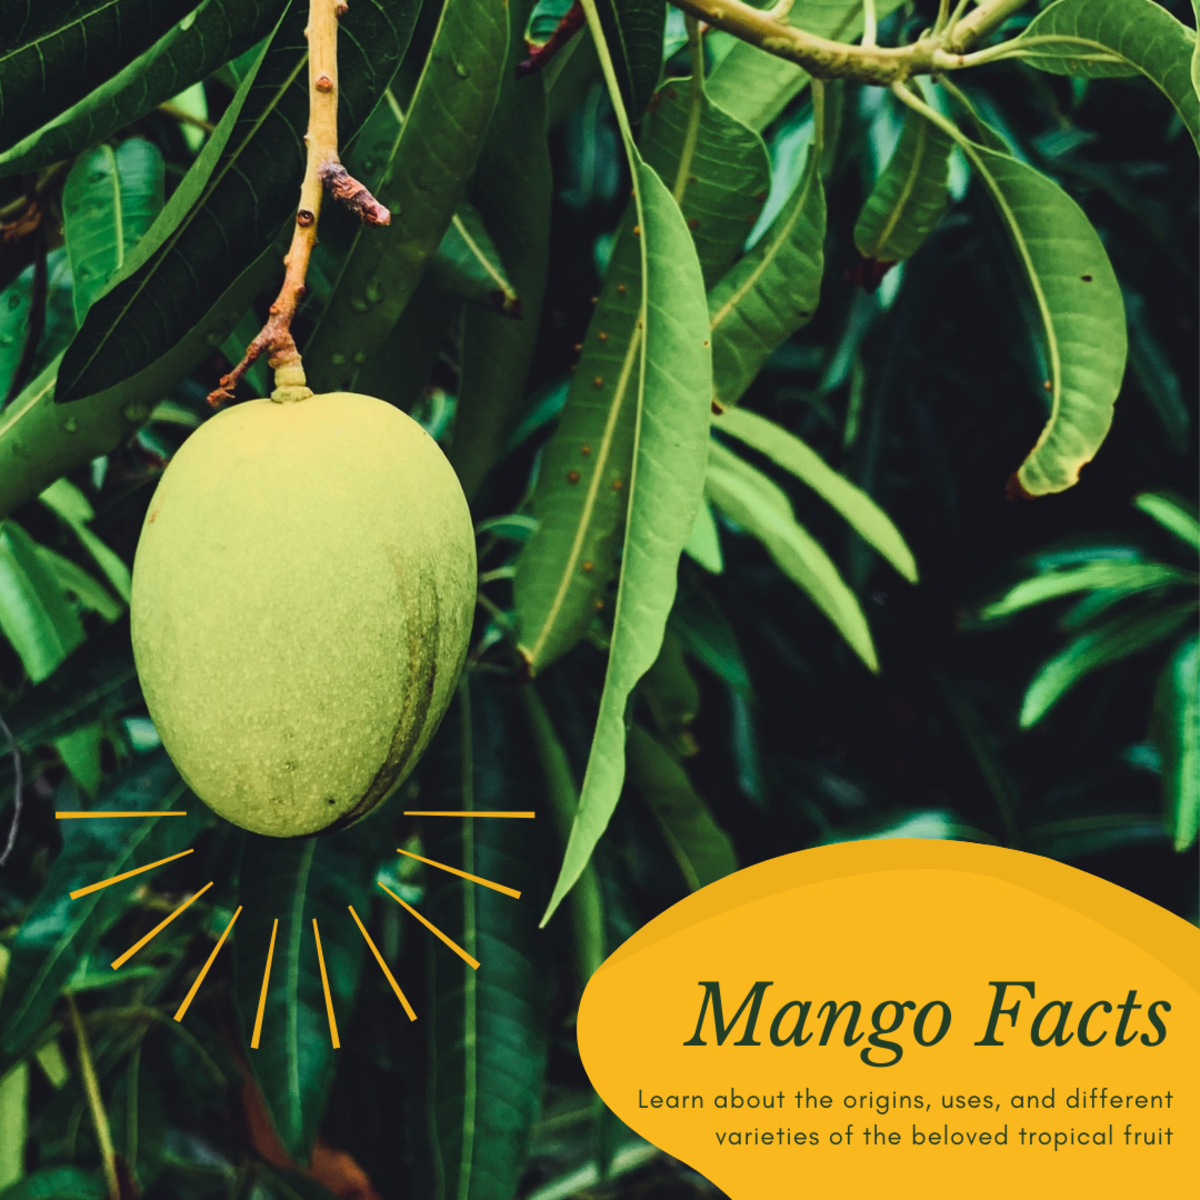 Facts About the Mango Tree: Description, Types, and Uses